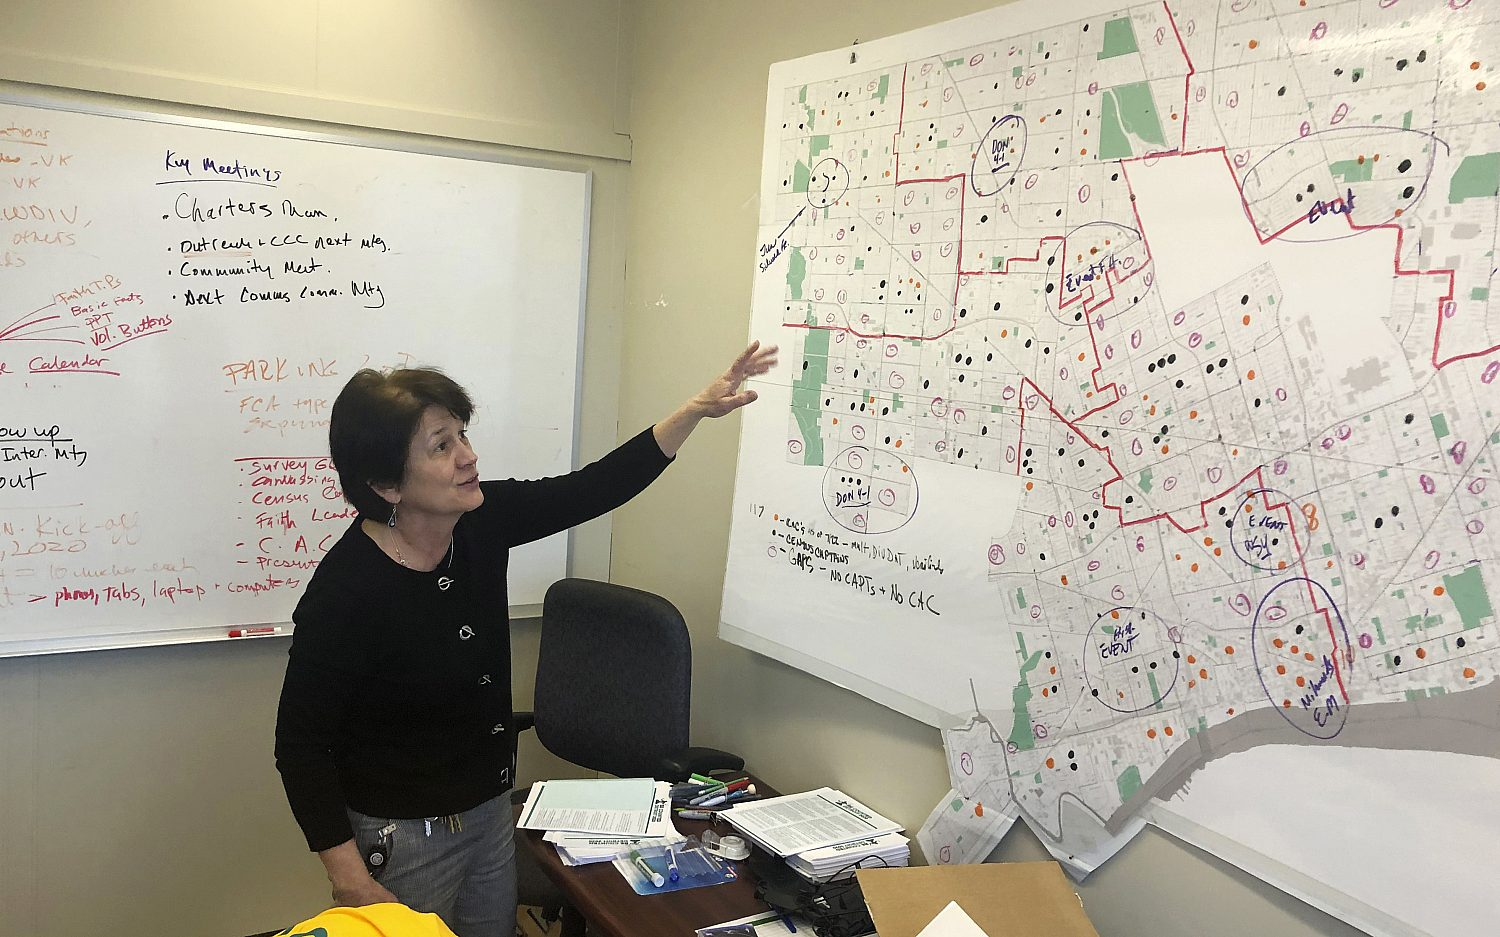 Redistricting could add red ink to congressional maps